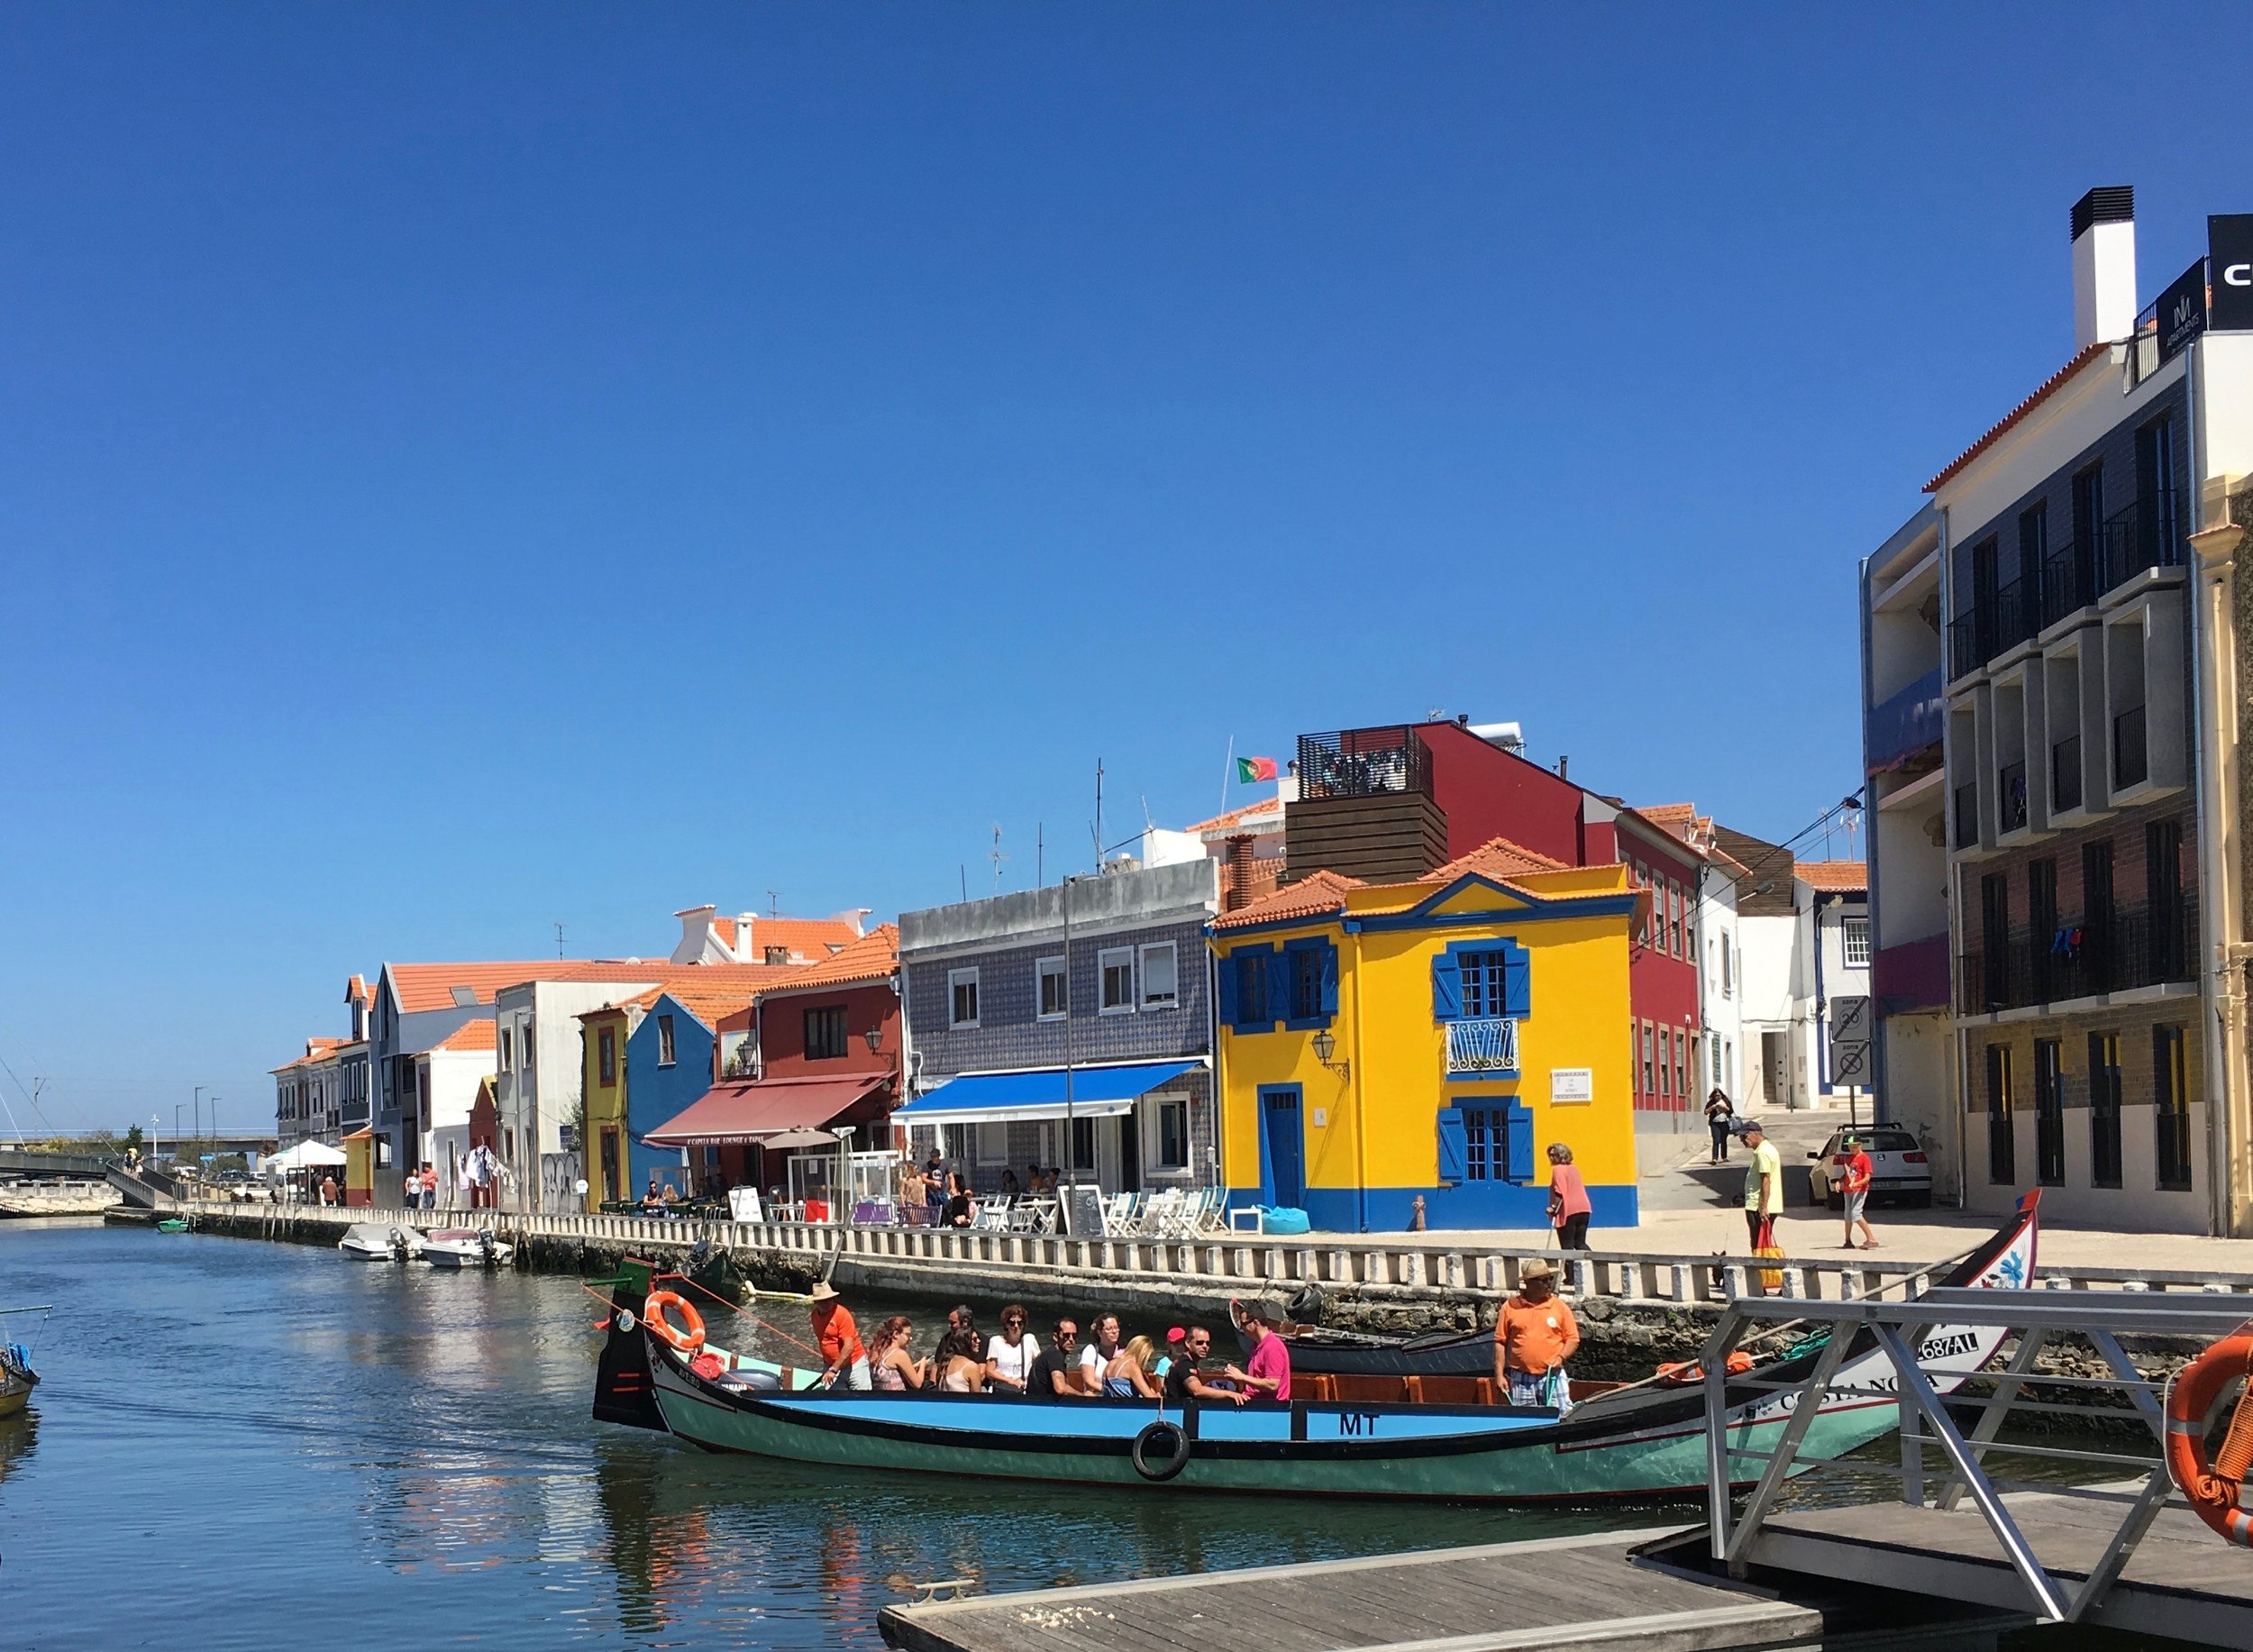 From Porto I traveled on a train to Lisbon and made a pit stop in Aveiro.  It's known as the Venice of Portugal. It's small and quaint and I spent a few lovely hours there wandering about town.